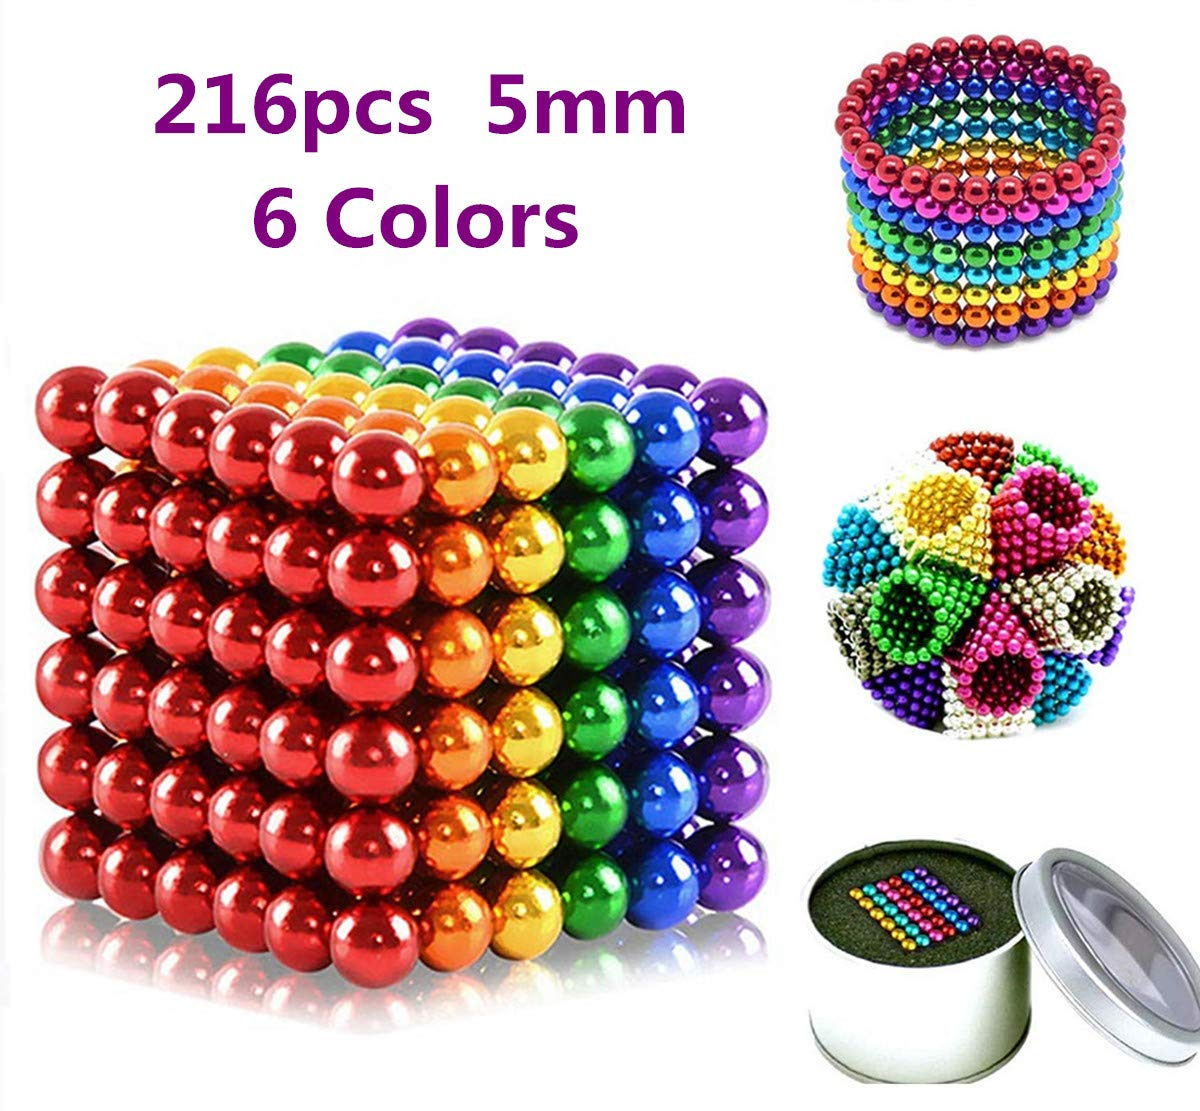 RITONS 216 Pieces 5MM Magnets DIY Toys Magnetic Sculpture Building Blocks Fidget Gadget Toys for Intelligence Learning -Office Toy & Stress Relief for Adults (6 Colors) by RITONS